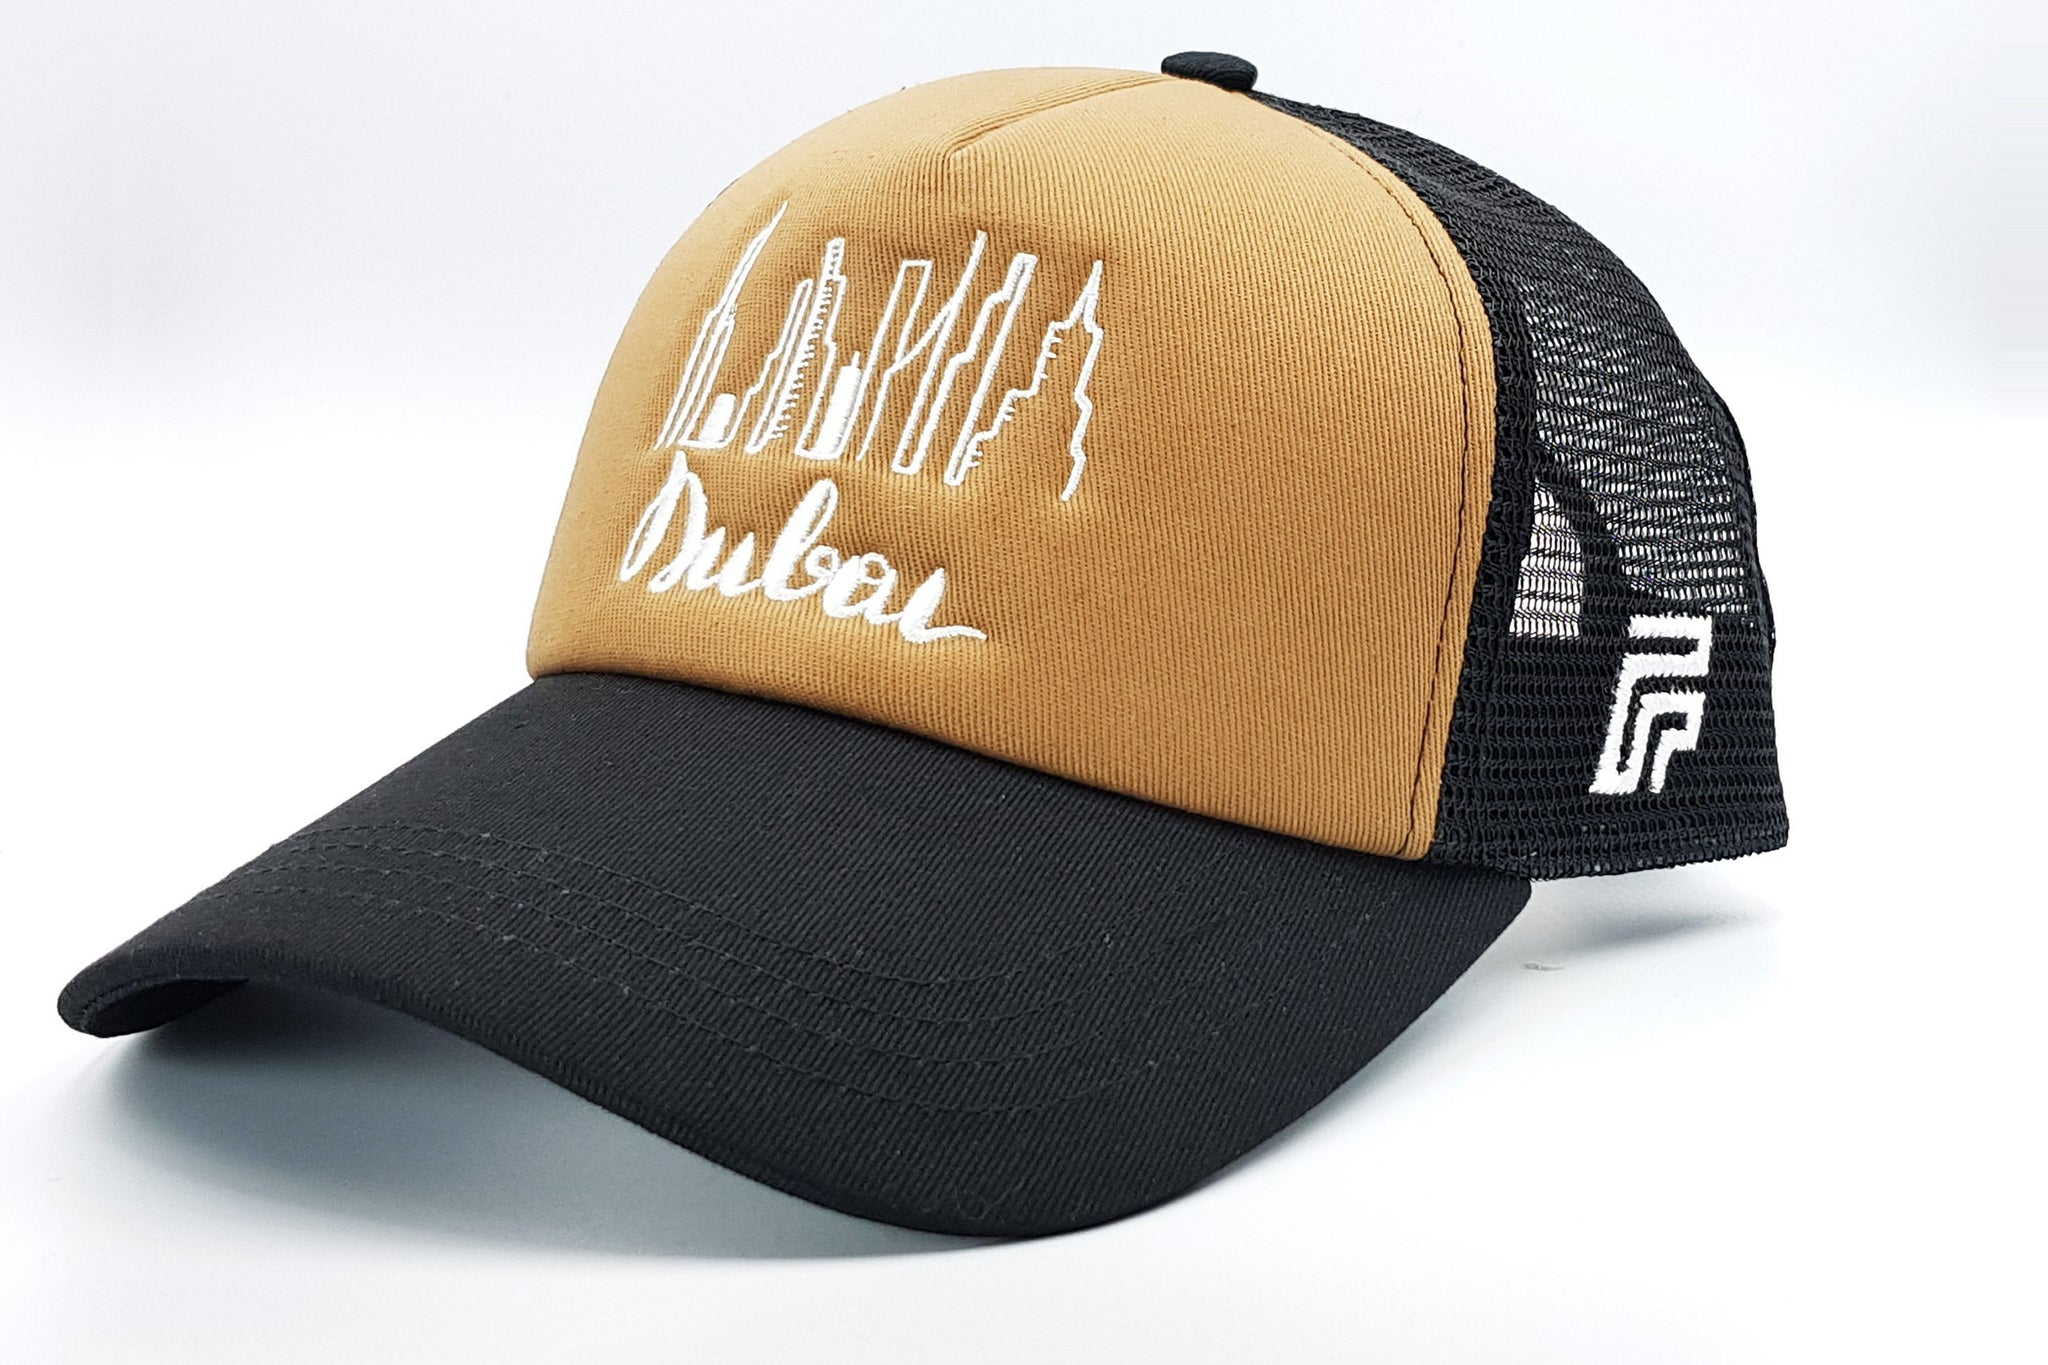 Dubai cap brown-black Foxerz sidelong view